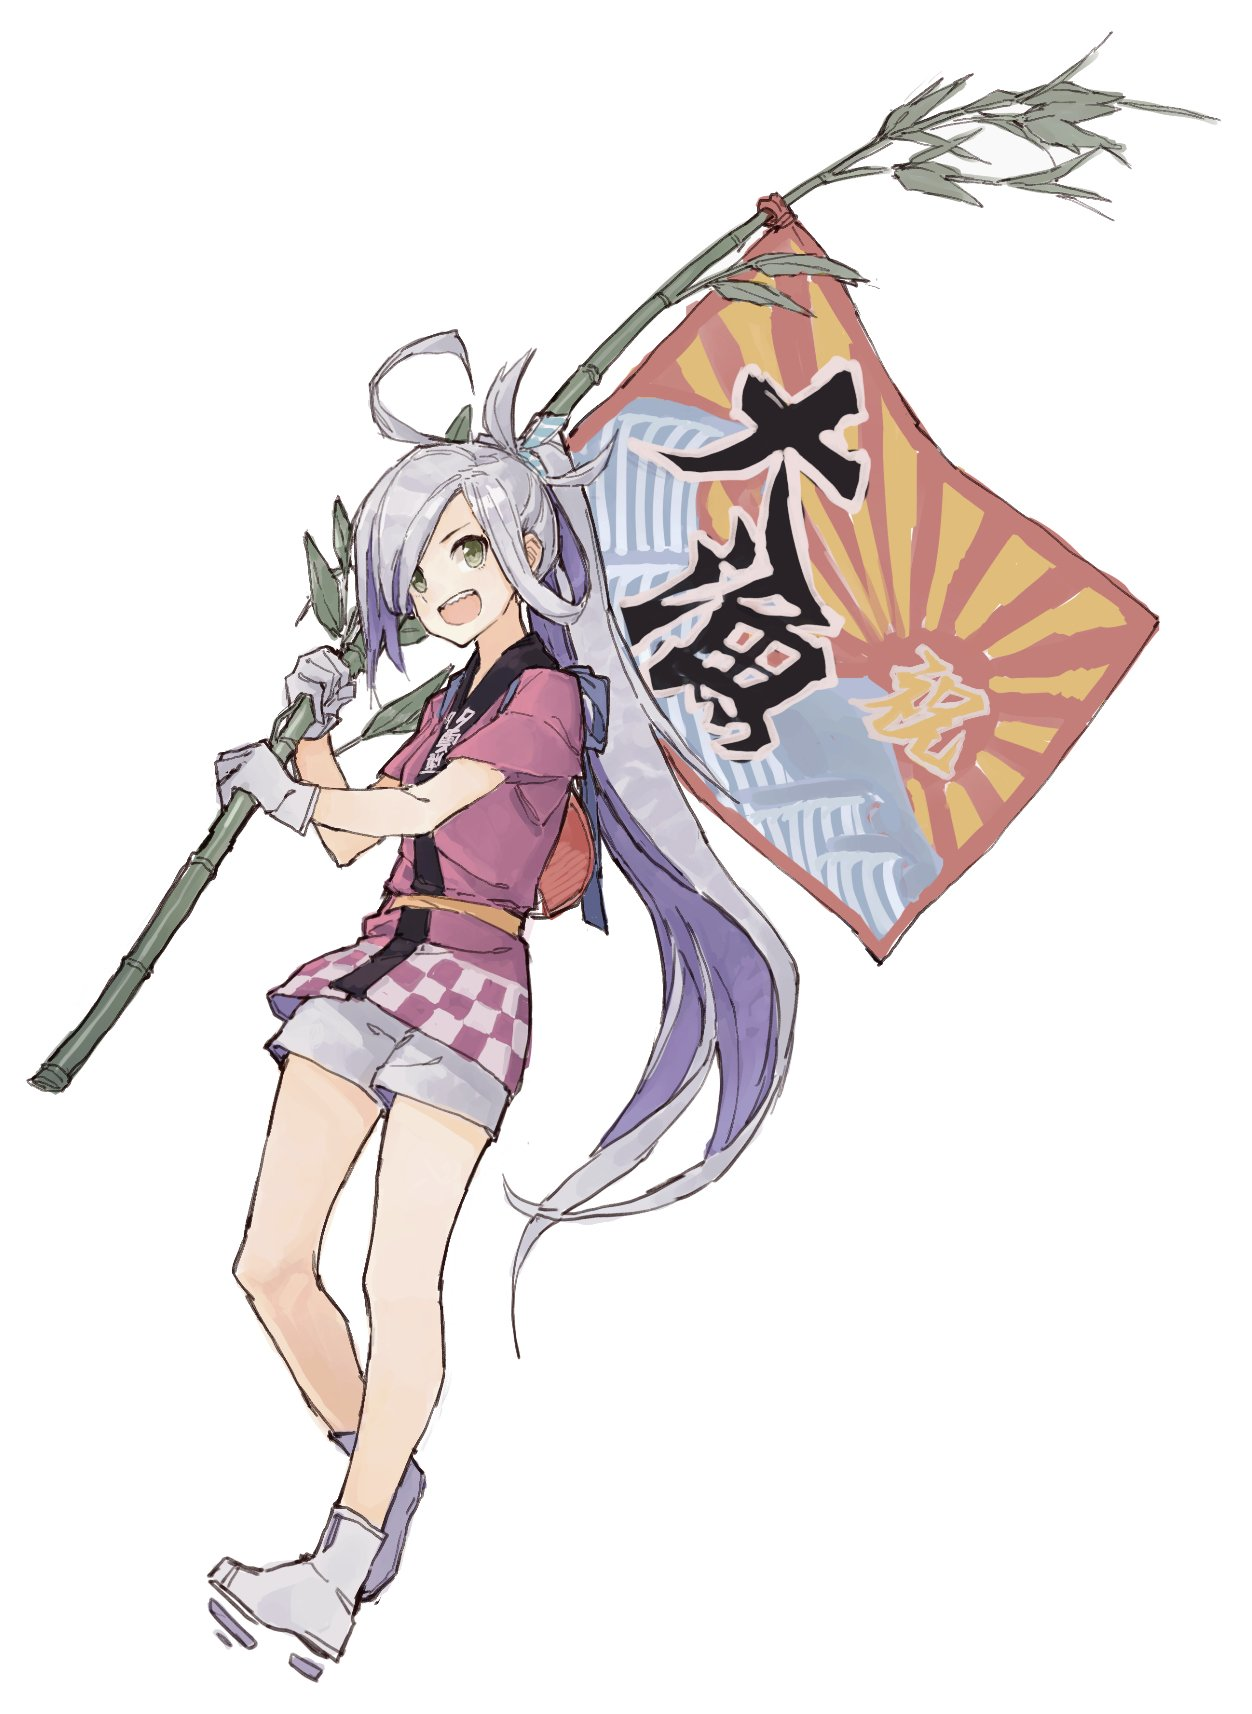 1girl ahoge air_qh asashimo_(kantai_collection) bamboo clothes_writing commentary fan flag gloves grey_eyes grey_hair hair_over_one_eye happi highres japanese_clothes kantai_collection long_hair multicolored_hair paper_fan ponytail purple_hair sharp_teeth shorts teeth white_background white_gloves